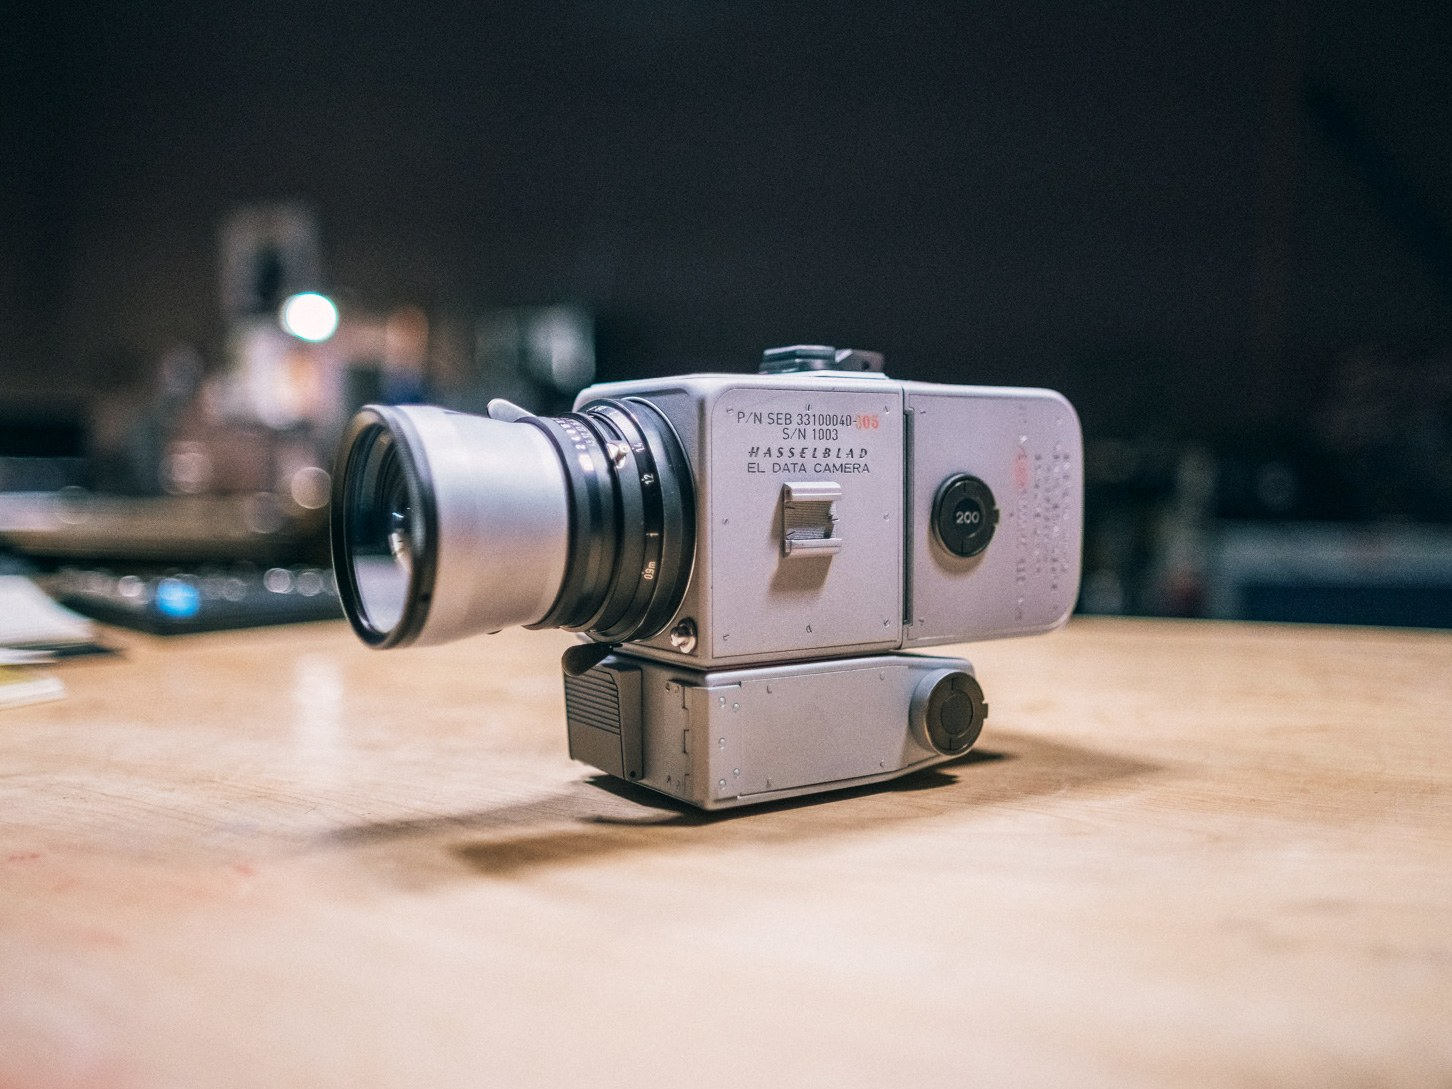 A Photographer Made a Working Replica of NASA's Moon Camera